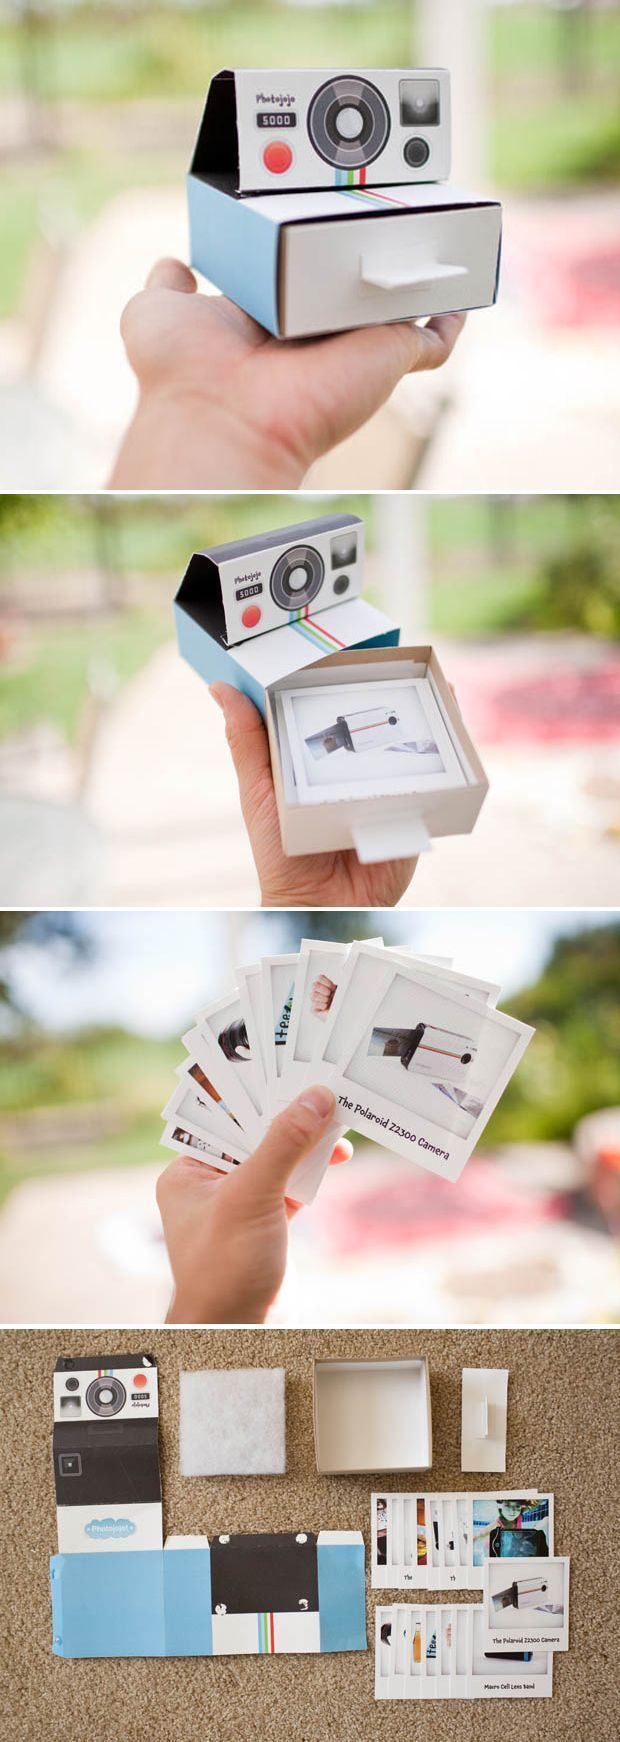 A Clever Polaroid Camera Promo Mailer Made with Card Stock Arshi